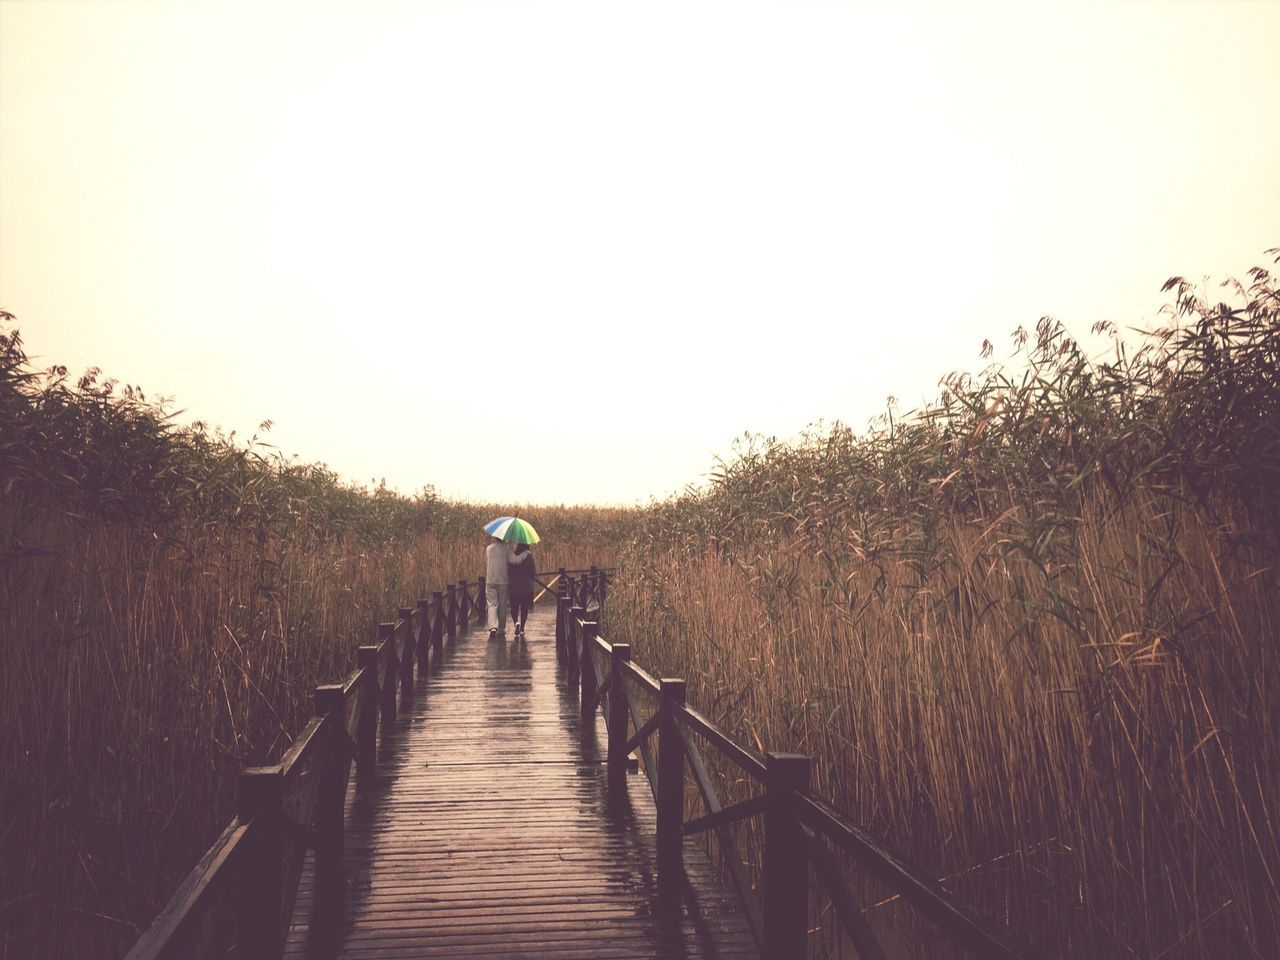 View EyeEm Nature Lover Taking Photos Rainy Days Vanishing Point